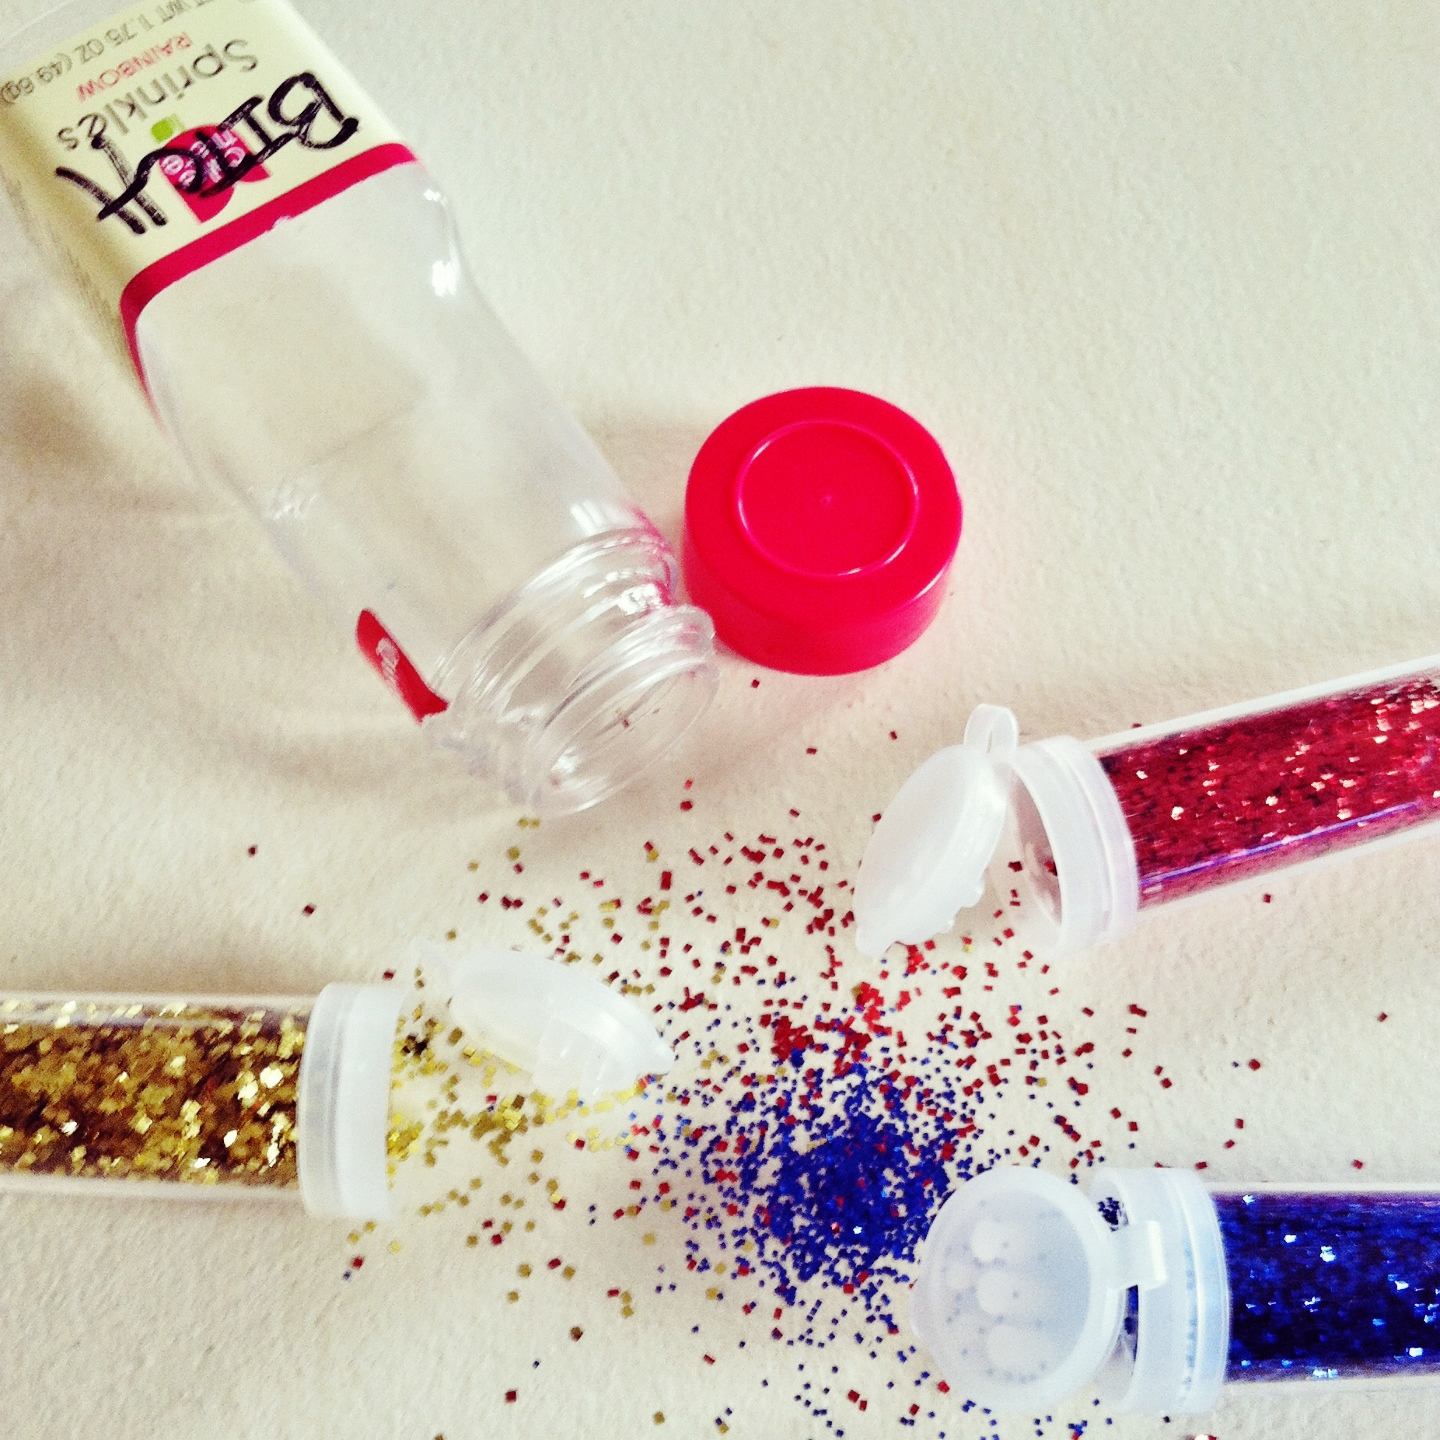 Bitch Sprinkles and Glitter Bombs